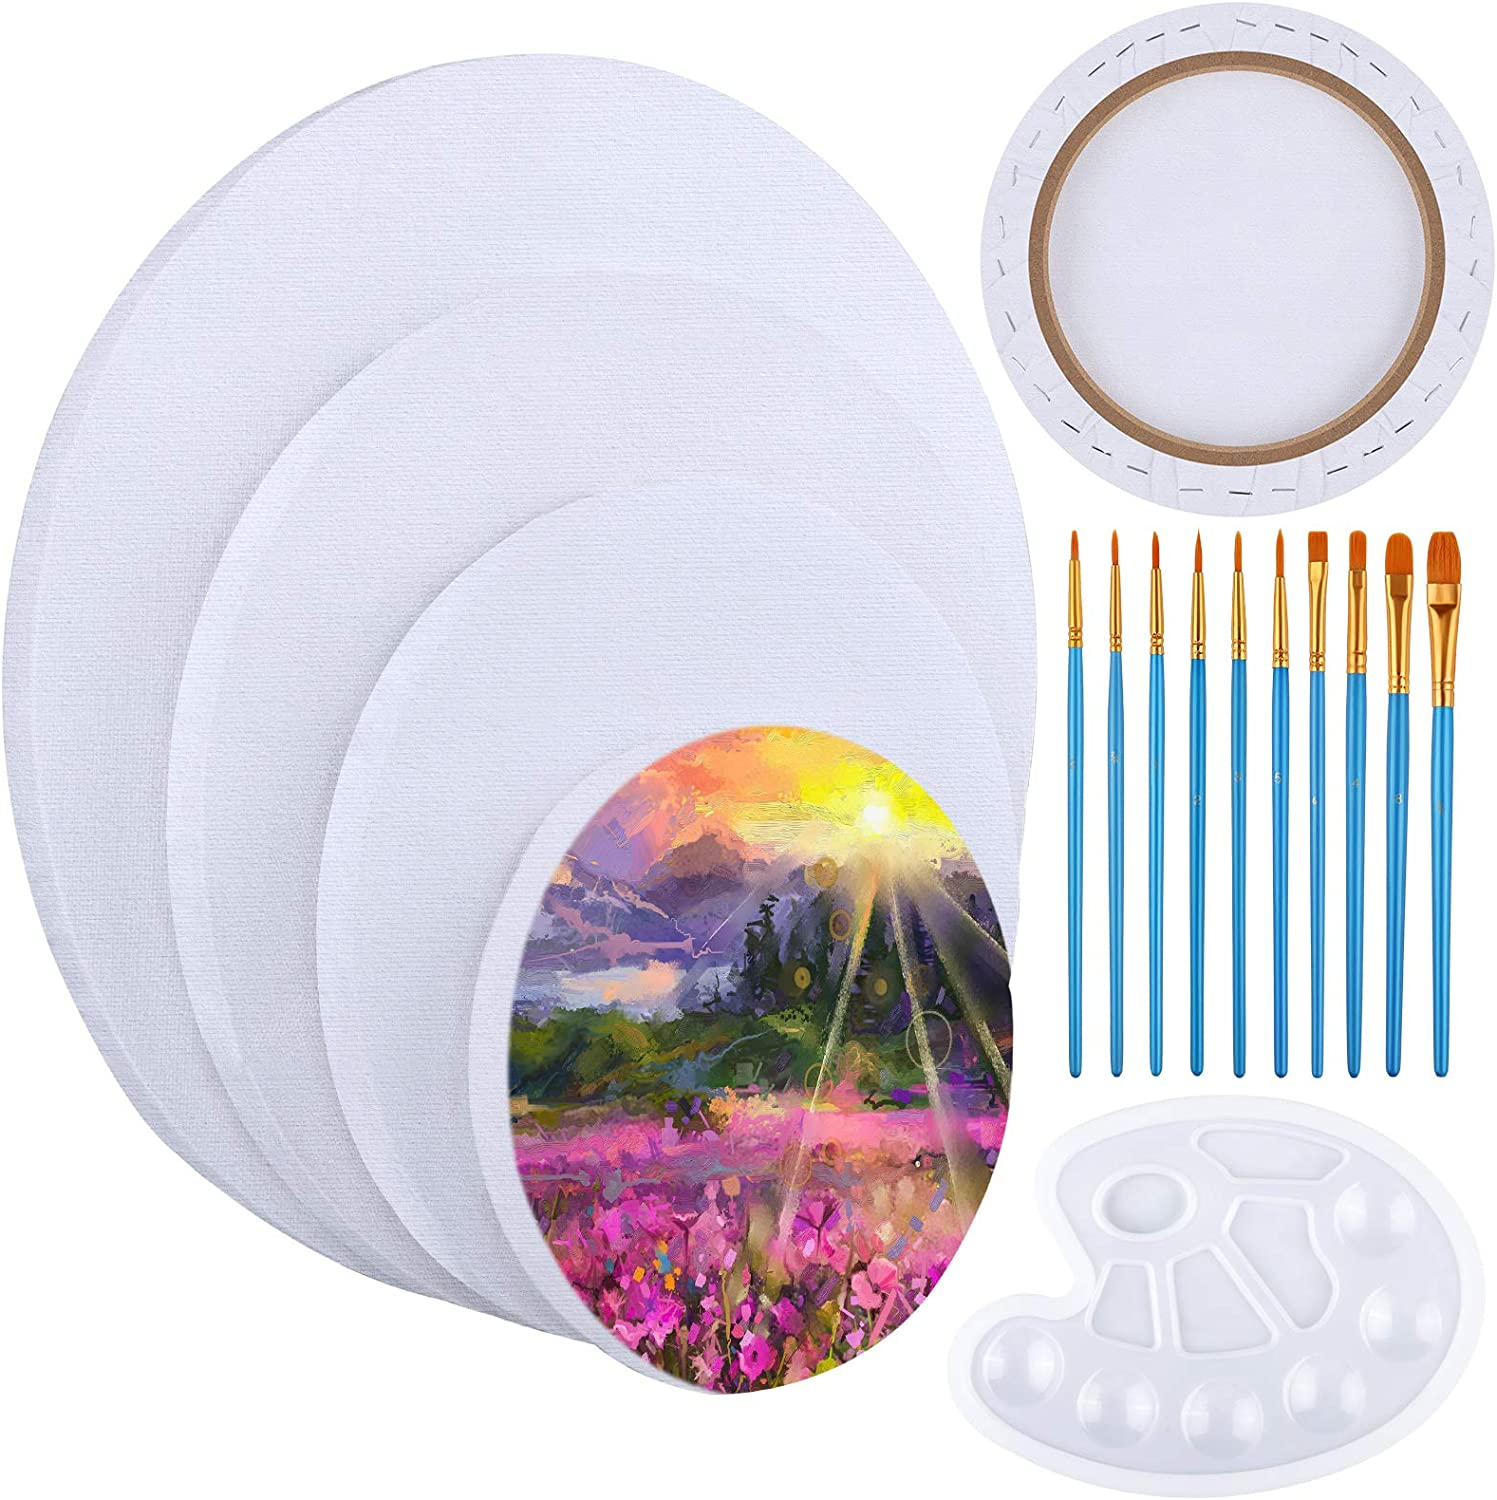 Ruisita 4 Pack Round Shaped Canvas Manufacturer direct delivery Paint Artist Max 86% OFF Stretched